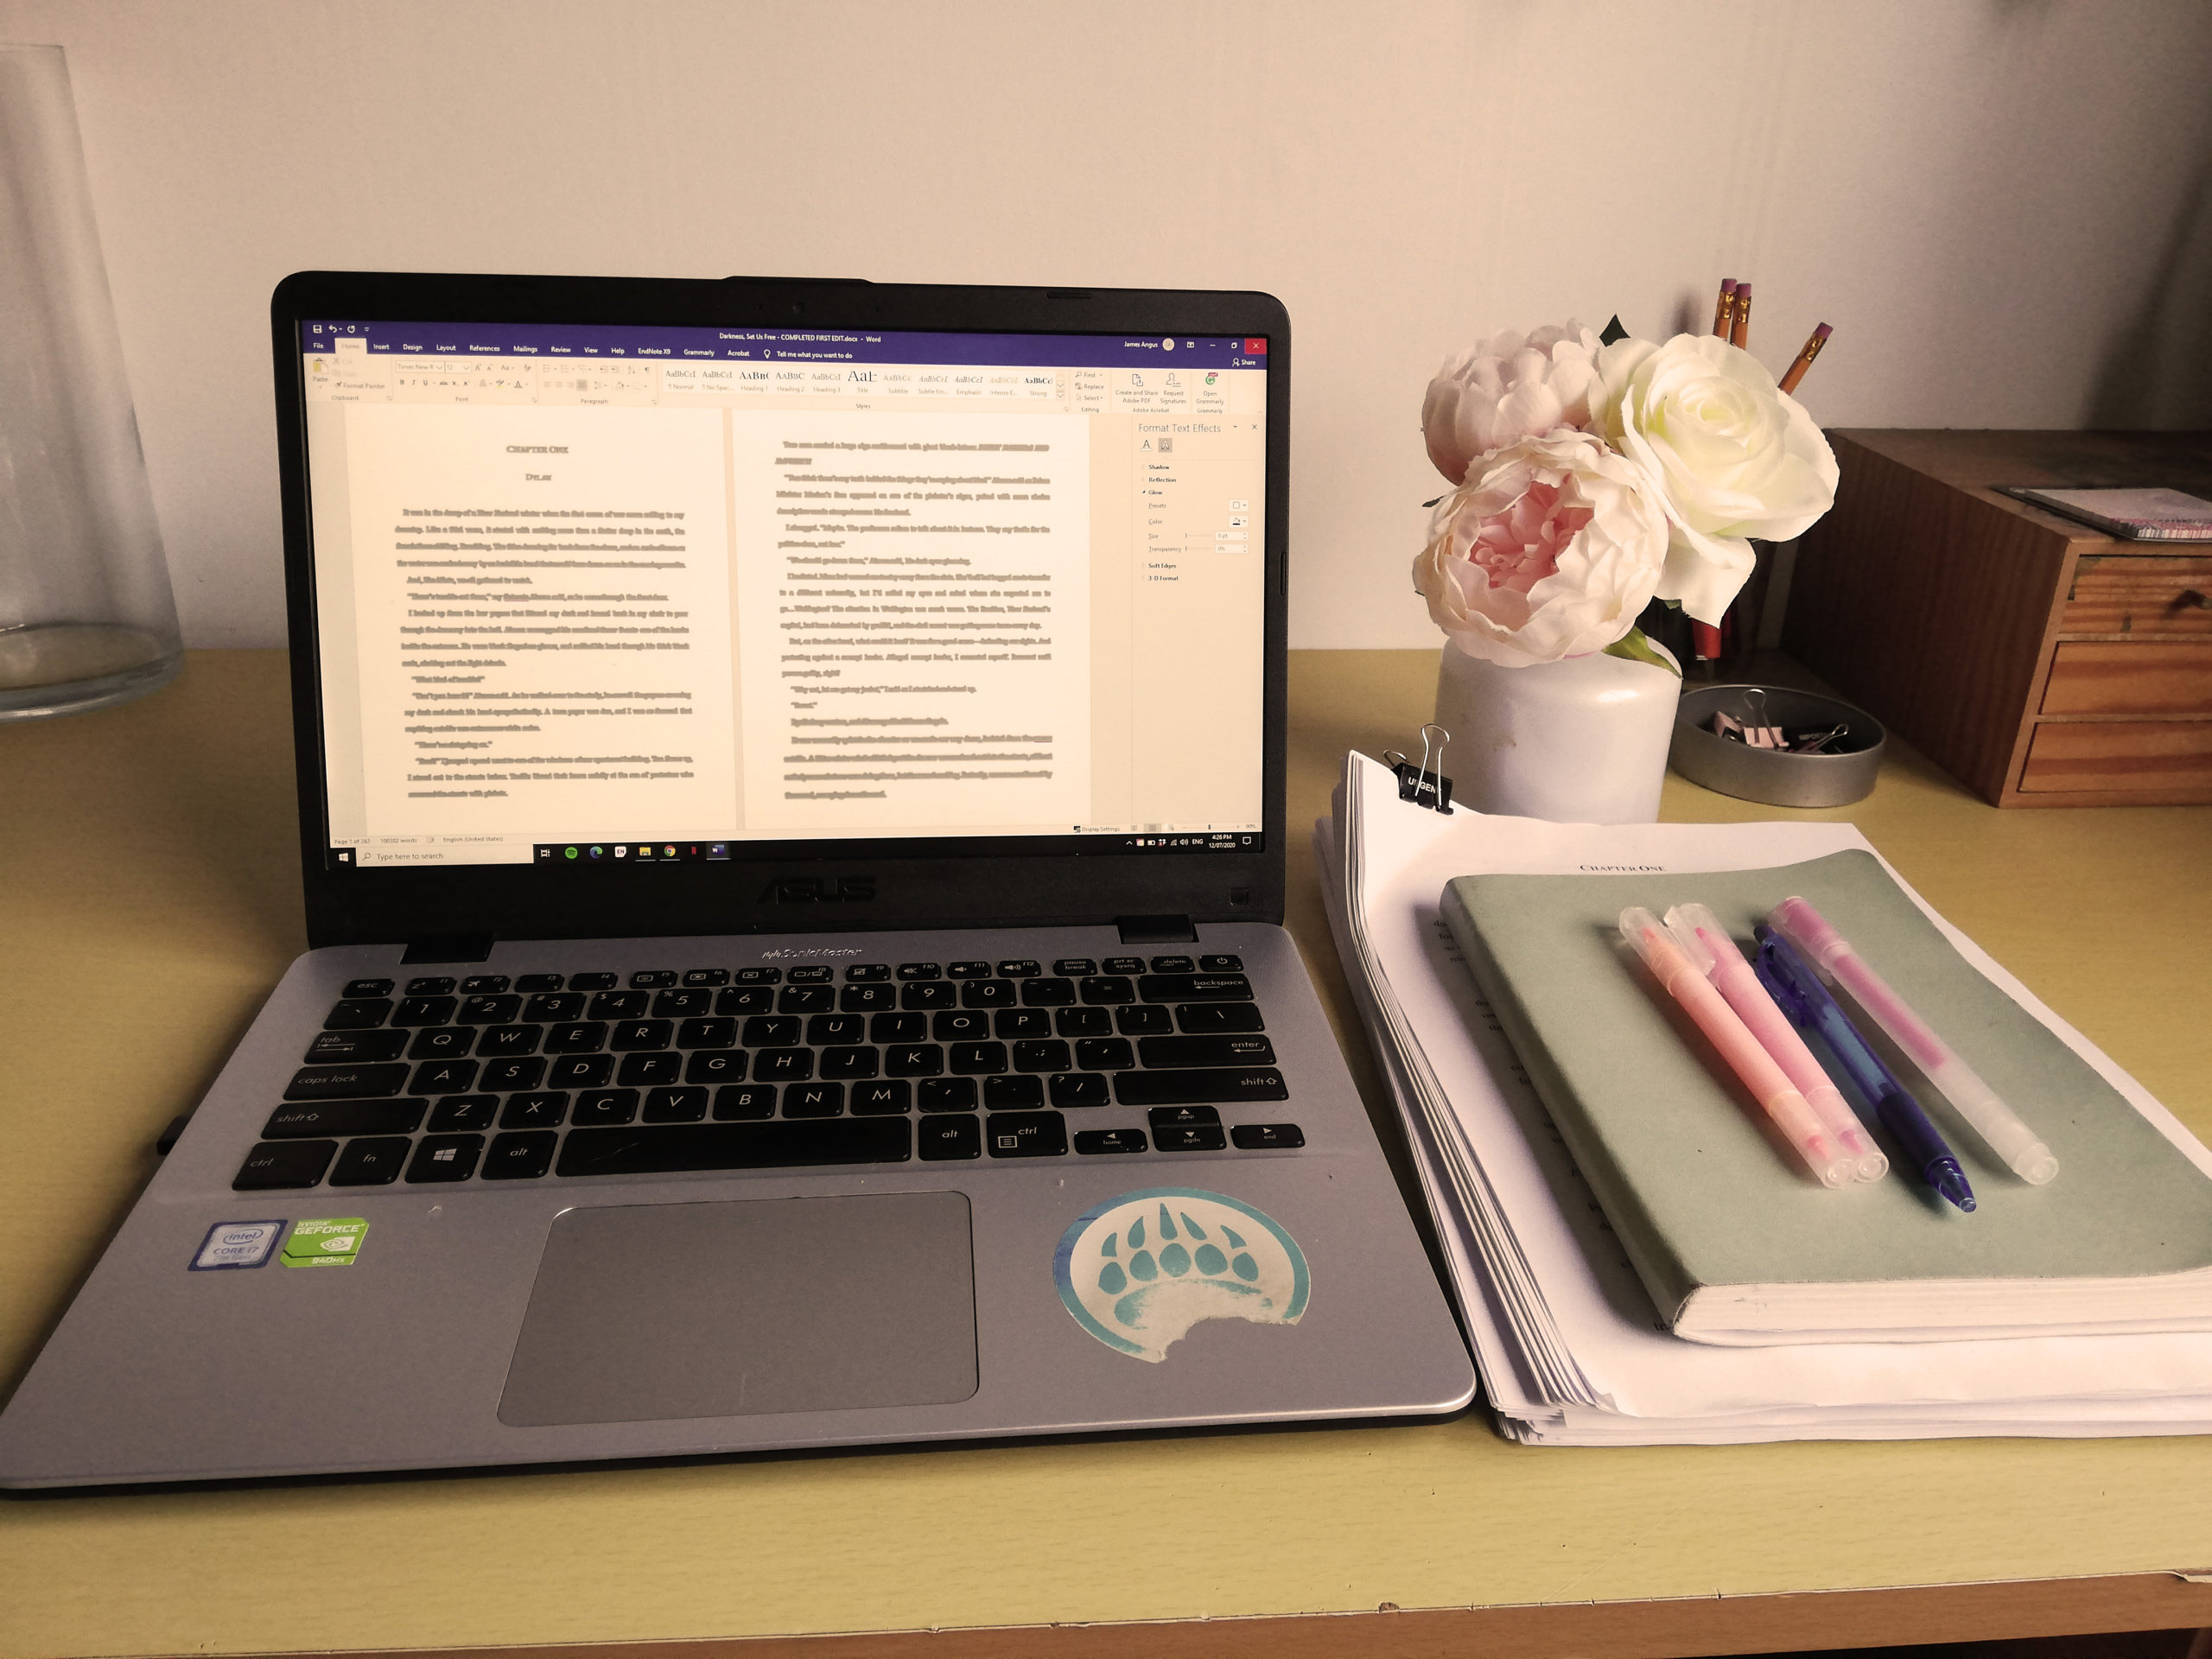 From familiar to unfamiliar. Ashley only just read Darkness, Set Us Free, after having a two month break from the manuscript. In the picture is her laptop, notebook and writing utensils, with roses in a vase for decoration.